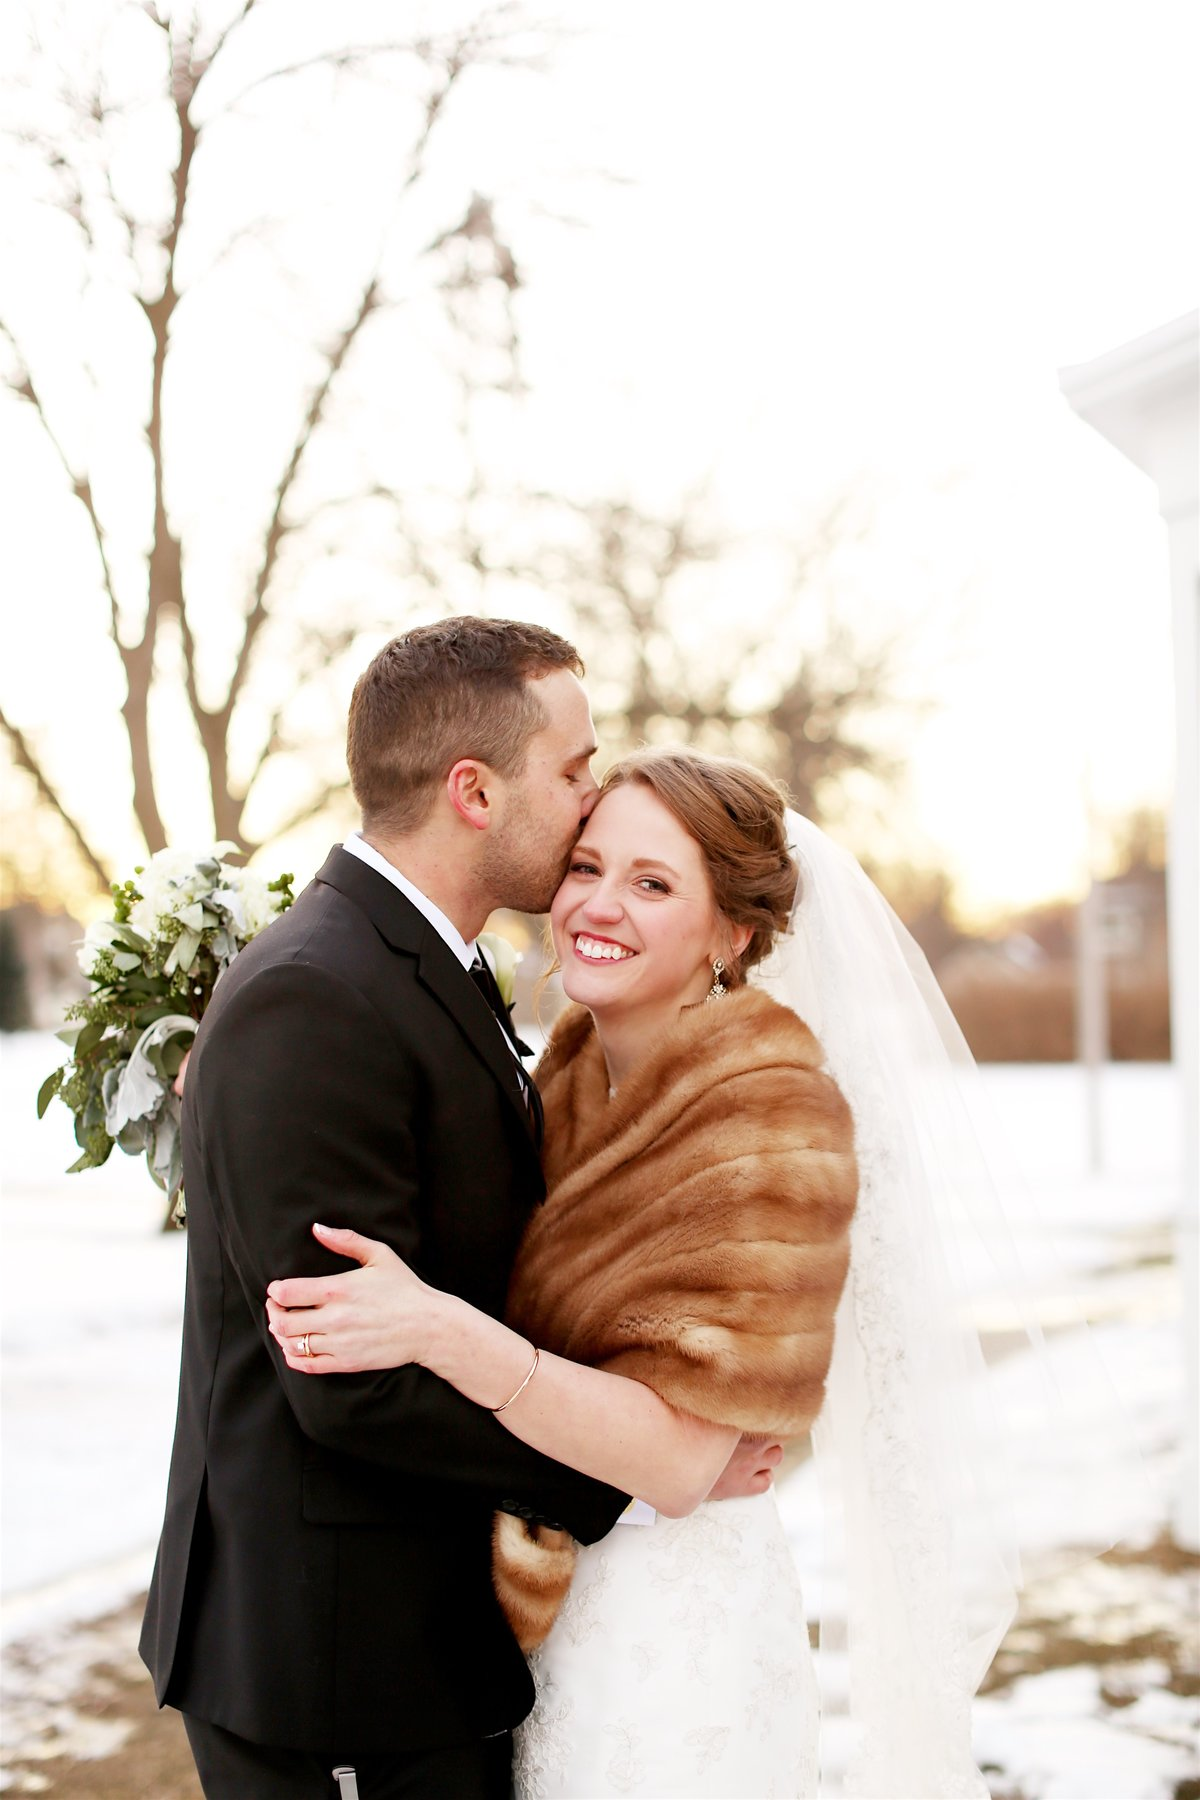 Catholic winter wedding in Belle Plaine, Minnesota